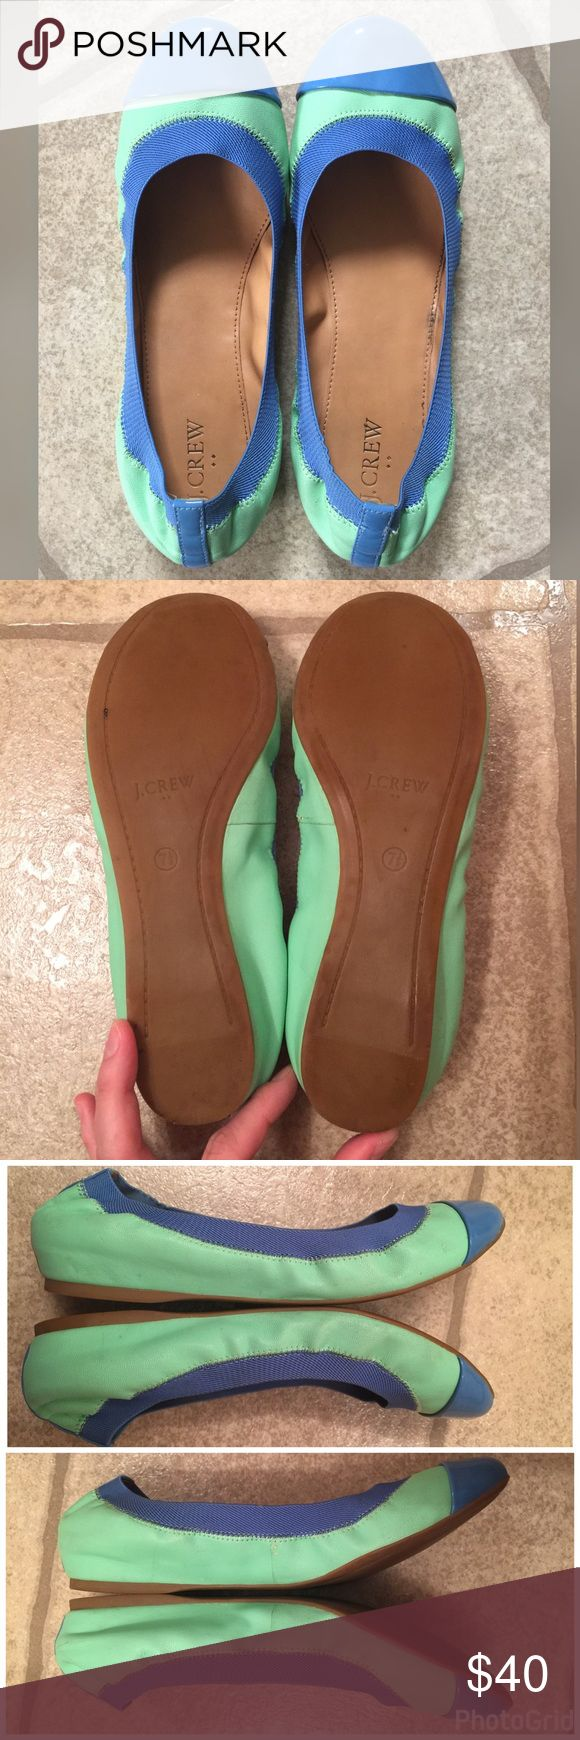 J Crew Factory Marley Ballet Flats Green Blue 7.5 J Crew Factory Marley Ballet Flats Cafe Mint Green & Sparkling Sea Blue 7.5, Only Worn A Couple Times, Only Place That Shows Wear Is On the Outside Inner Part Of One Shoe On The Leather Beside Seam As Shown In Picture 4. From Smoke & Pet Free Home J. Crew Shoes Flats & Loafers